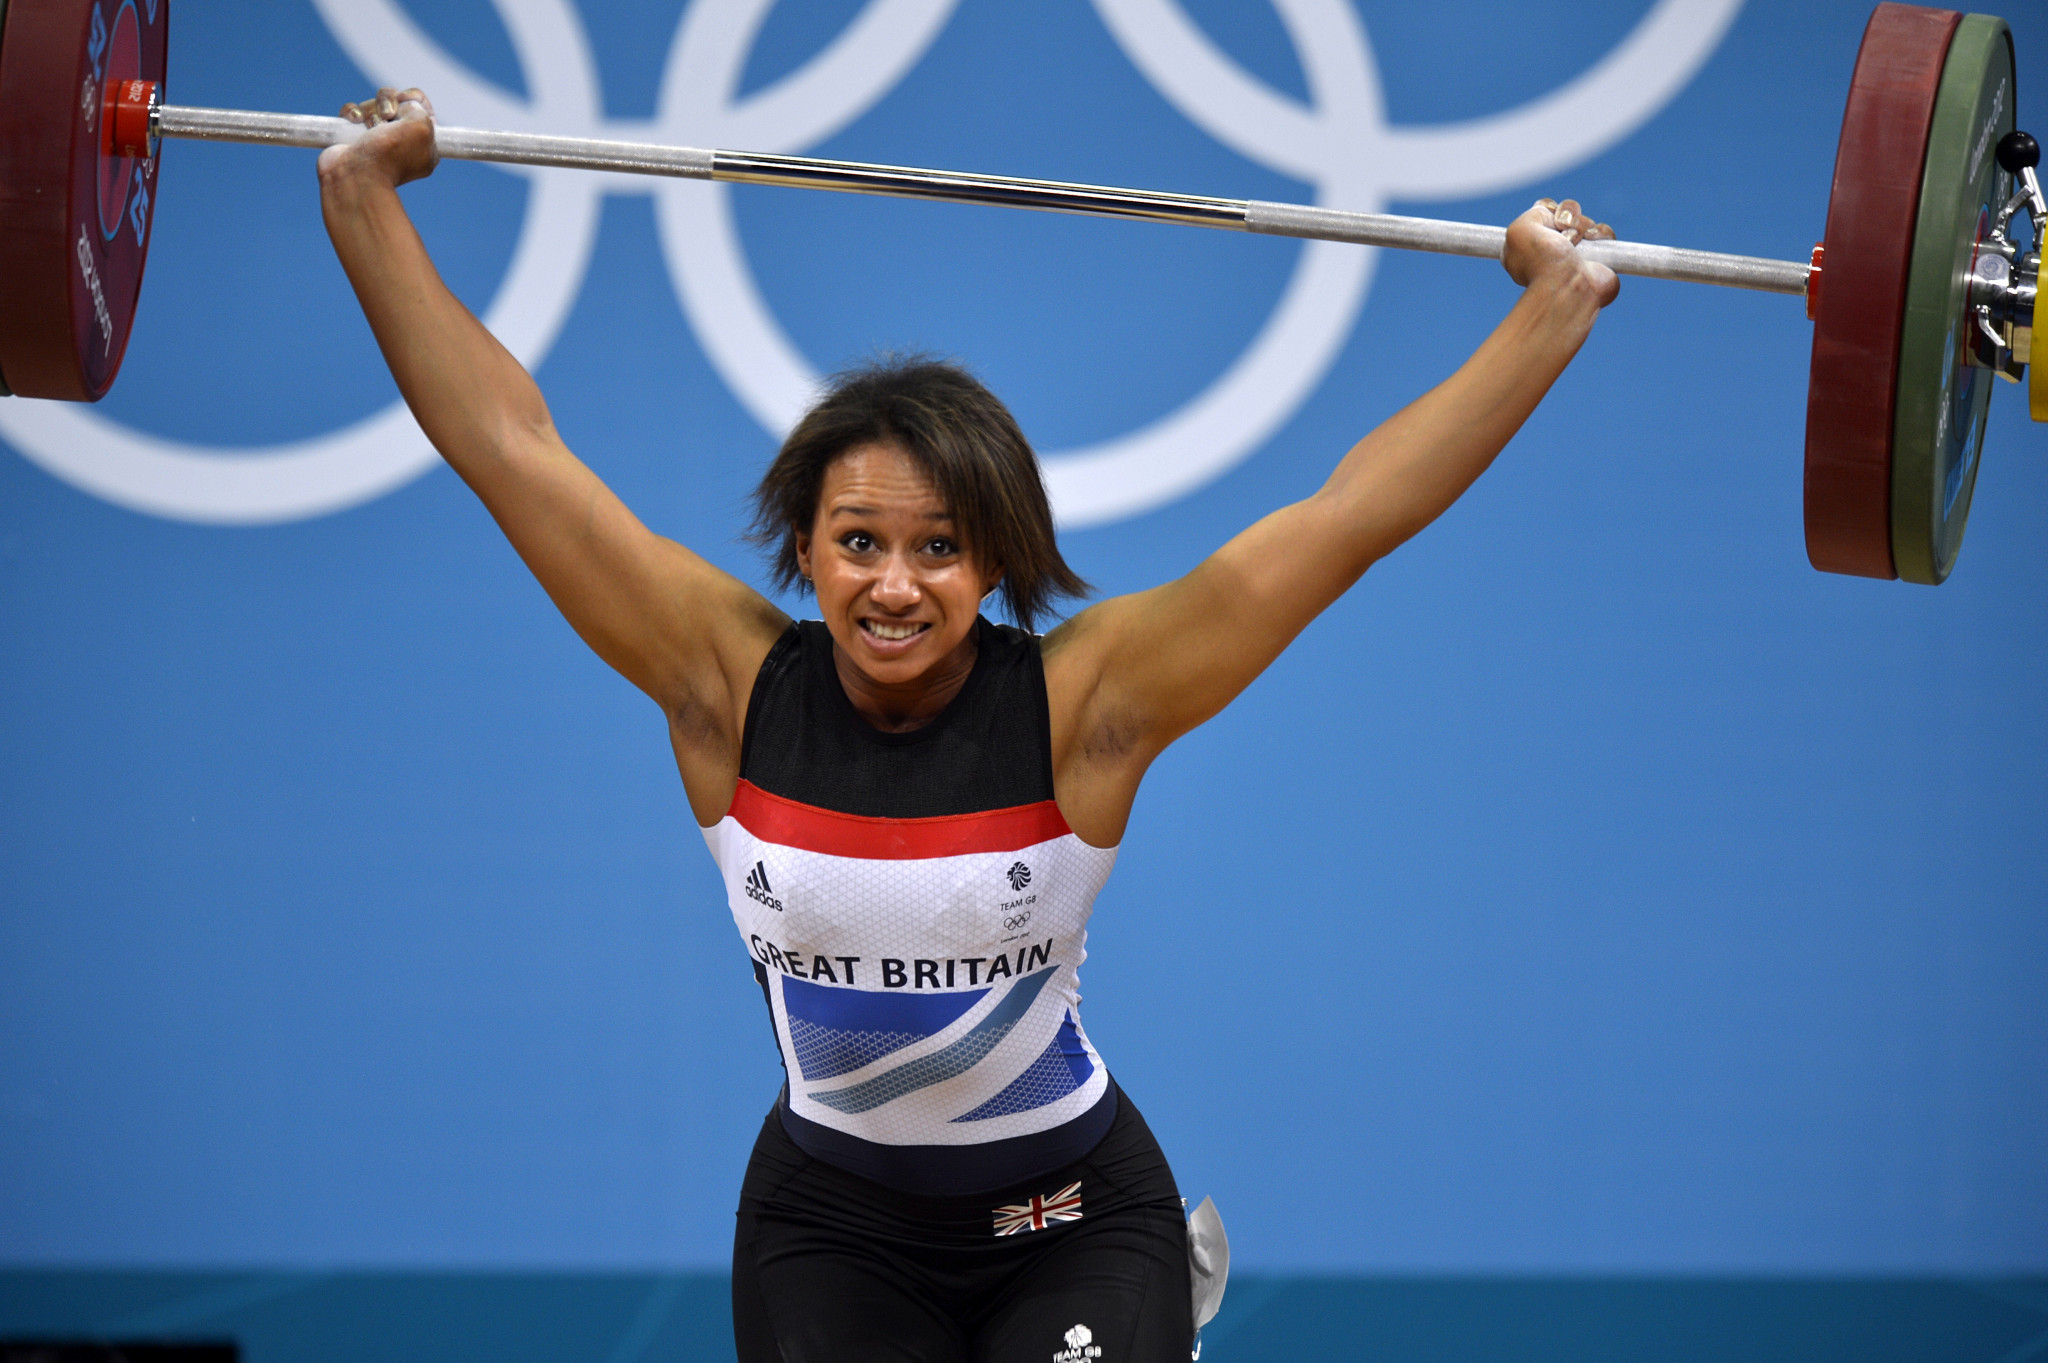 Great Britain has called for the entire IWF Executive Board to step down ©Getty Images